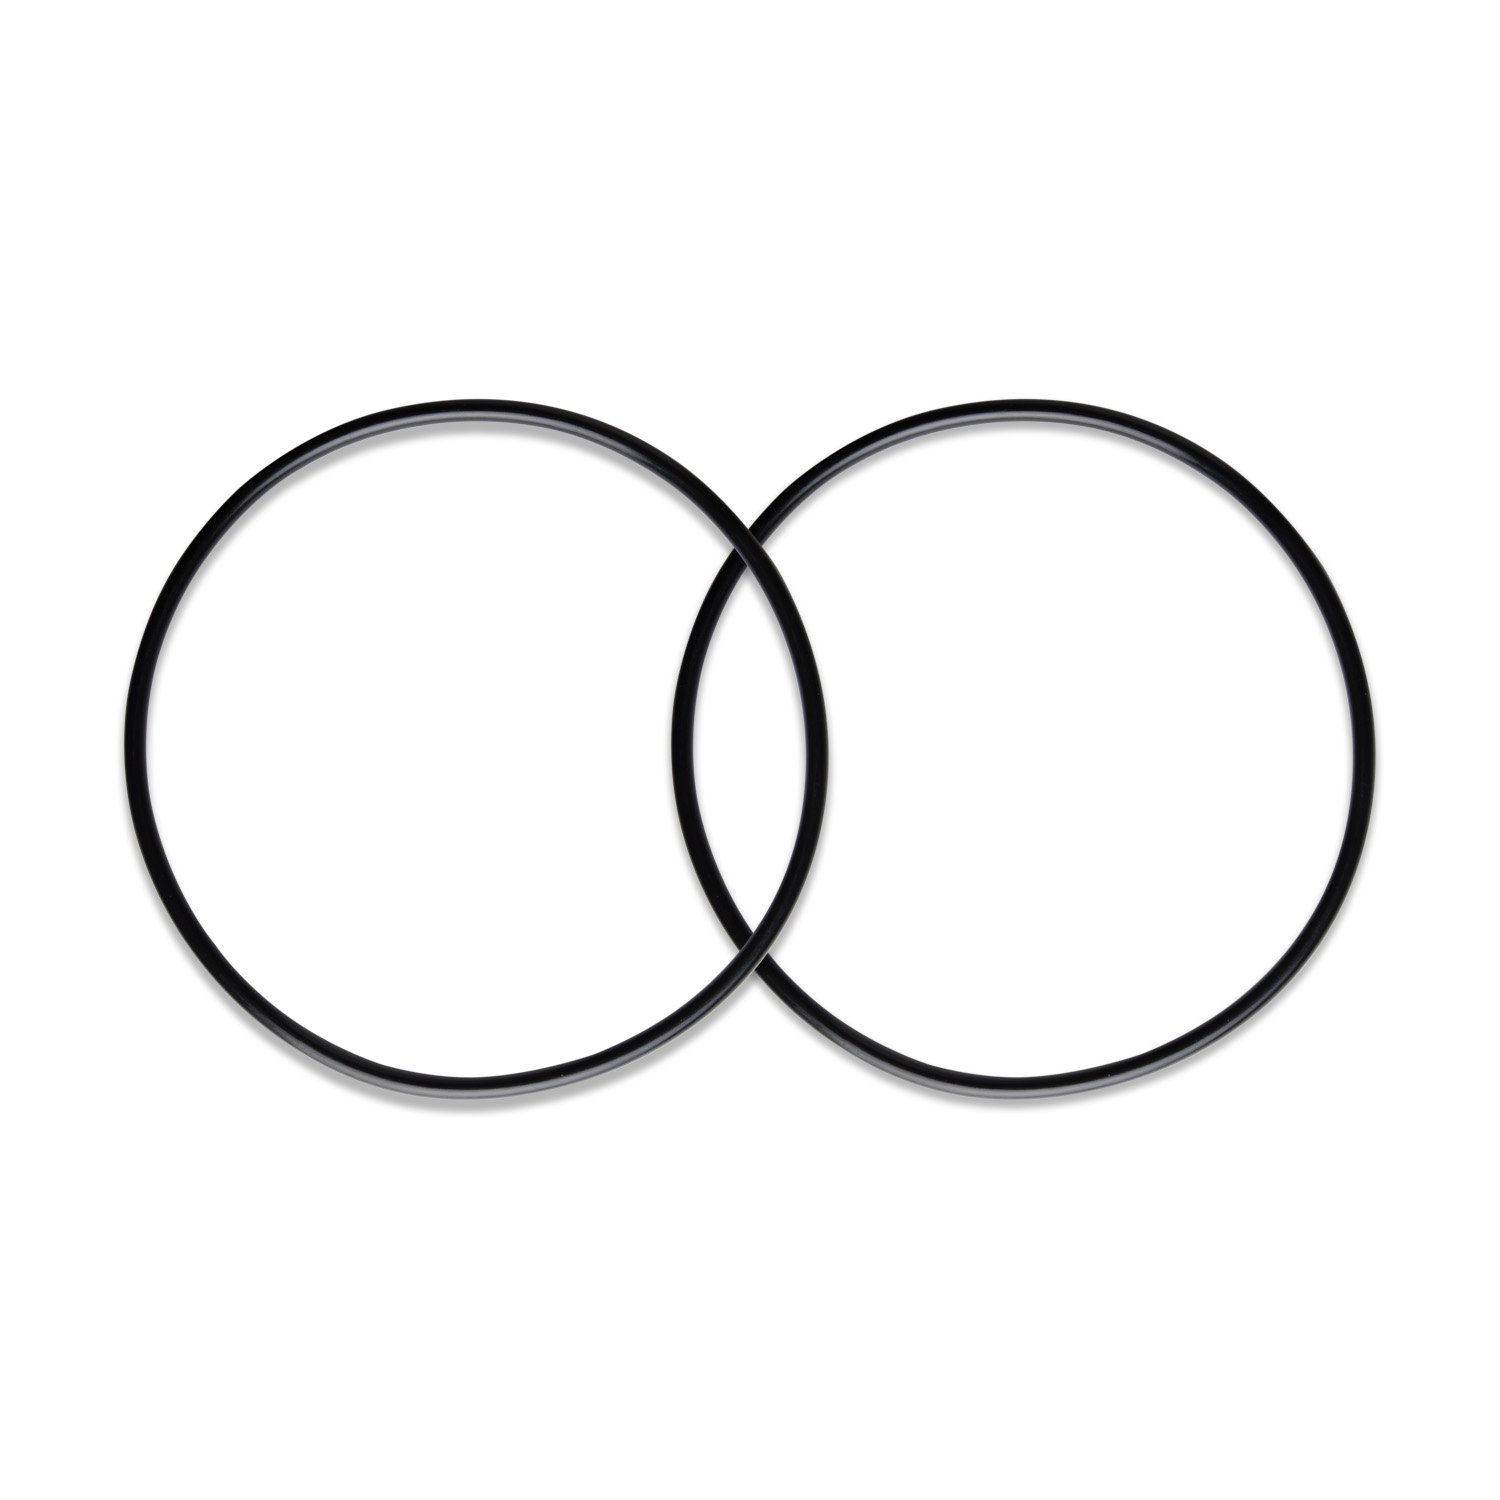 iSpring ORBX2 O-Ring for Big Blue Water Filter Housing (2 Pack), Black by iSpring